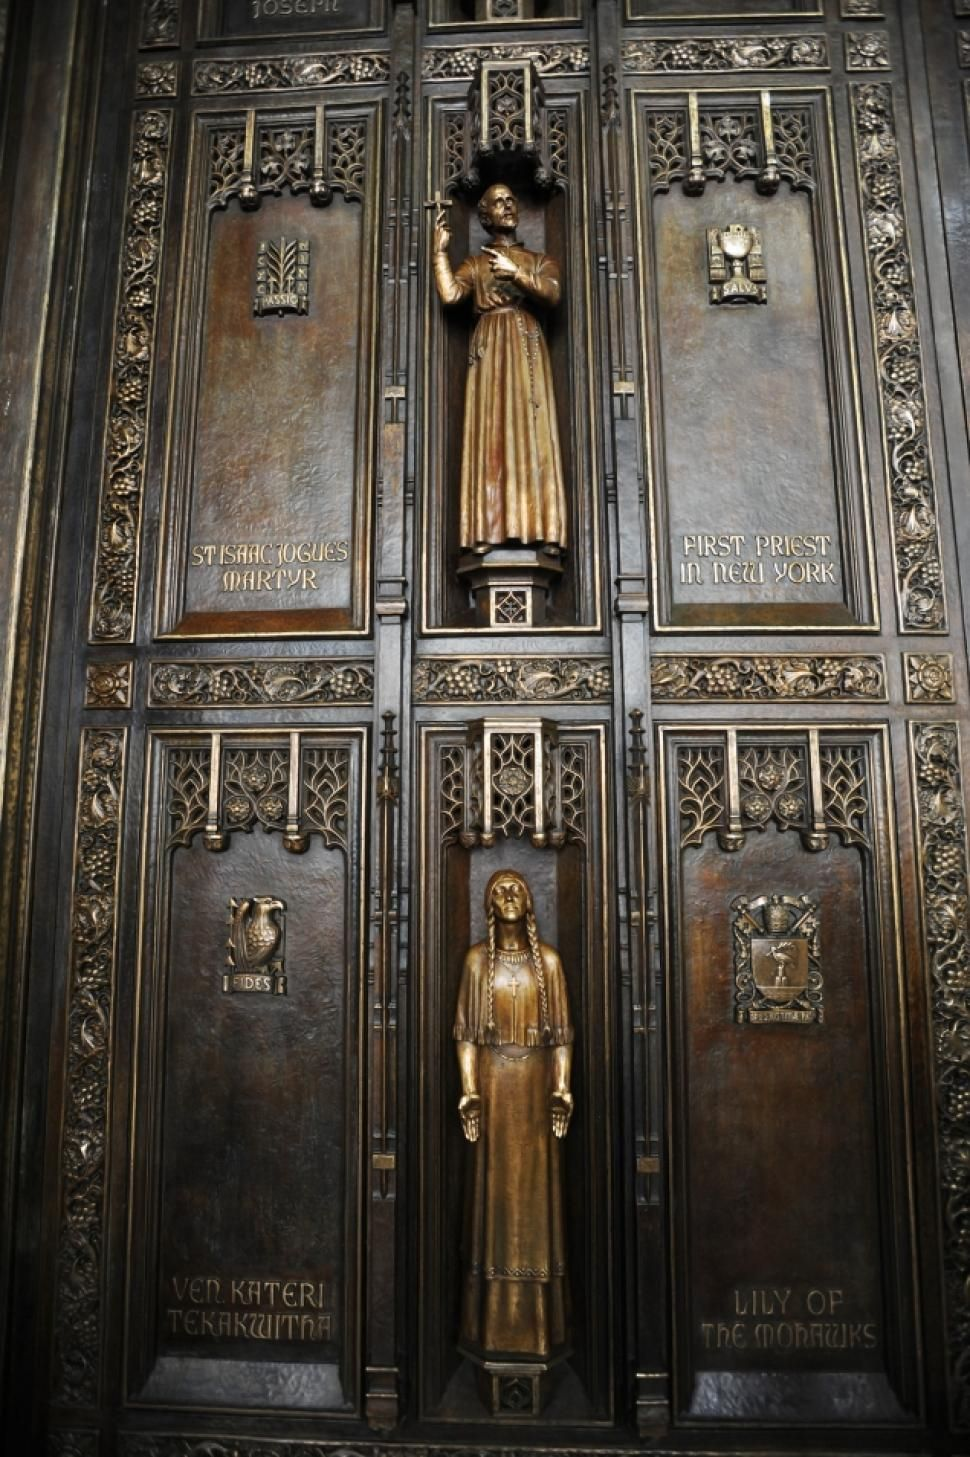 The ornately carved double doors of St. Patricku0027s Cathedral gets saintly door redo. New York & Portal St. Patricku0027s Cathedral Manhattan NY | NYC - Churches ... pezcame.com